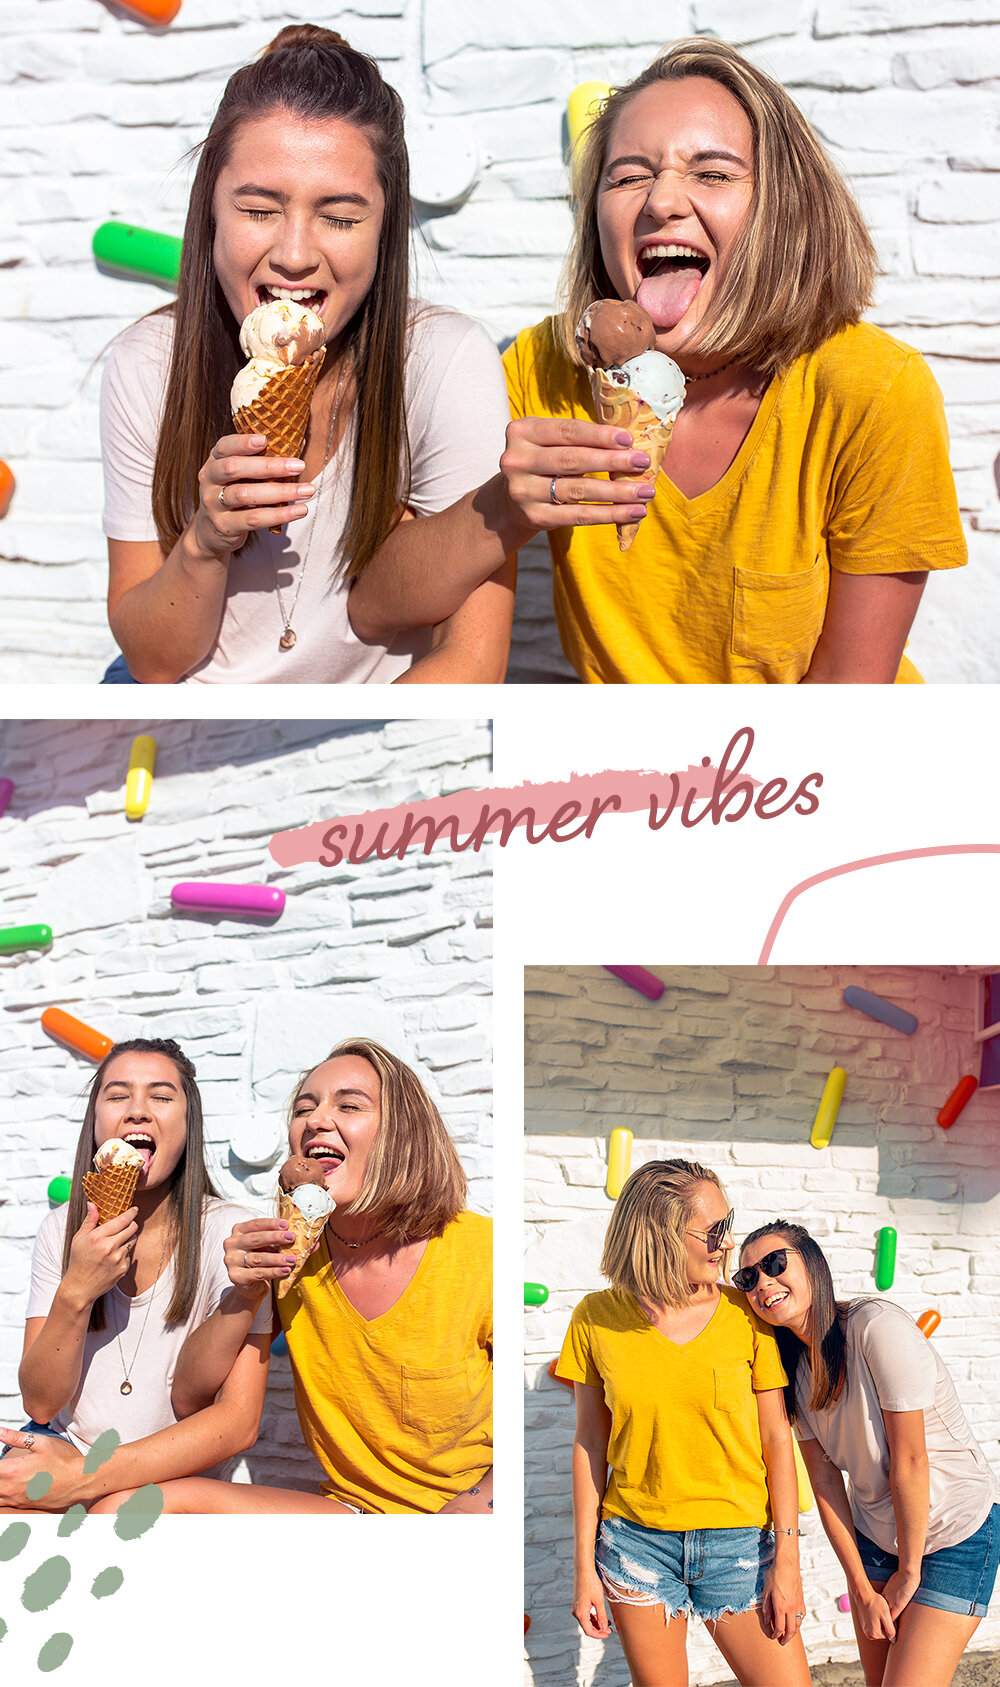 Best Friends And Ice Cream Passion Photoshoot Erin Reas Creates All we need is somebody to lean on 🎶 link in bio to join the. best friends and ice cream passion